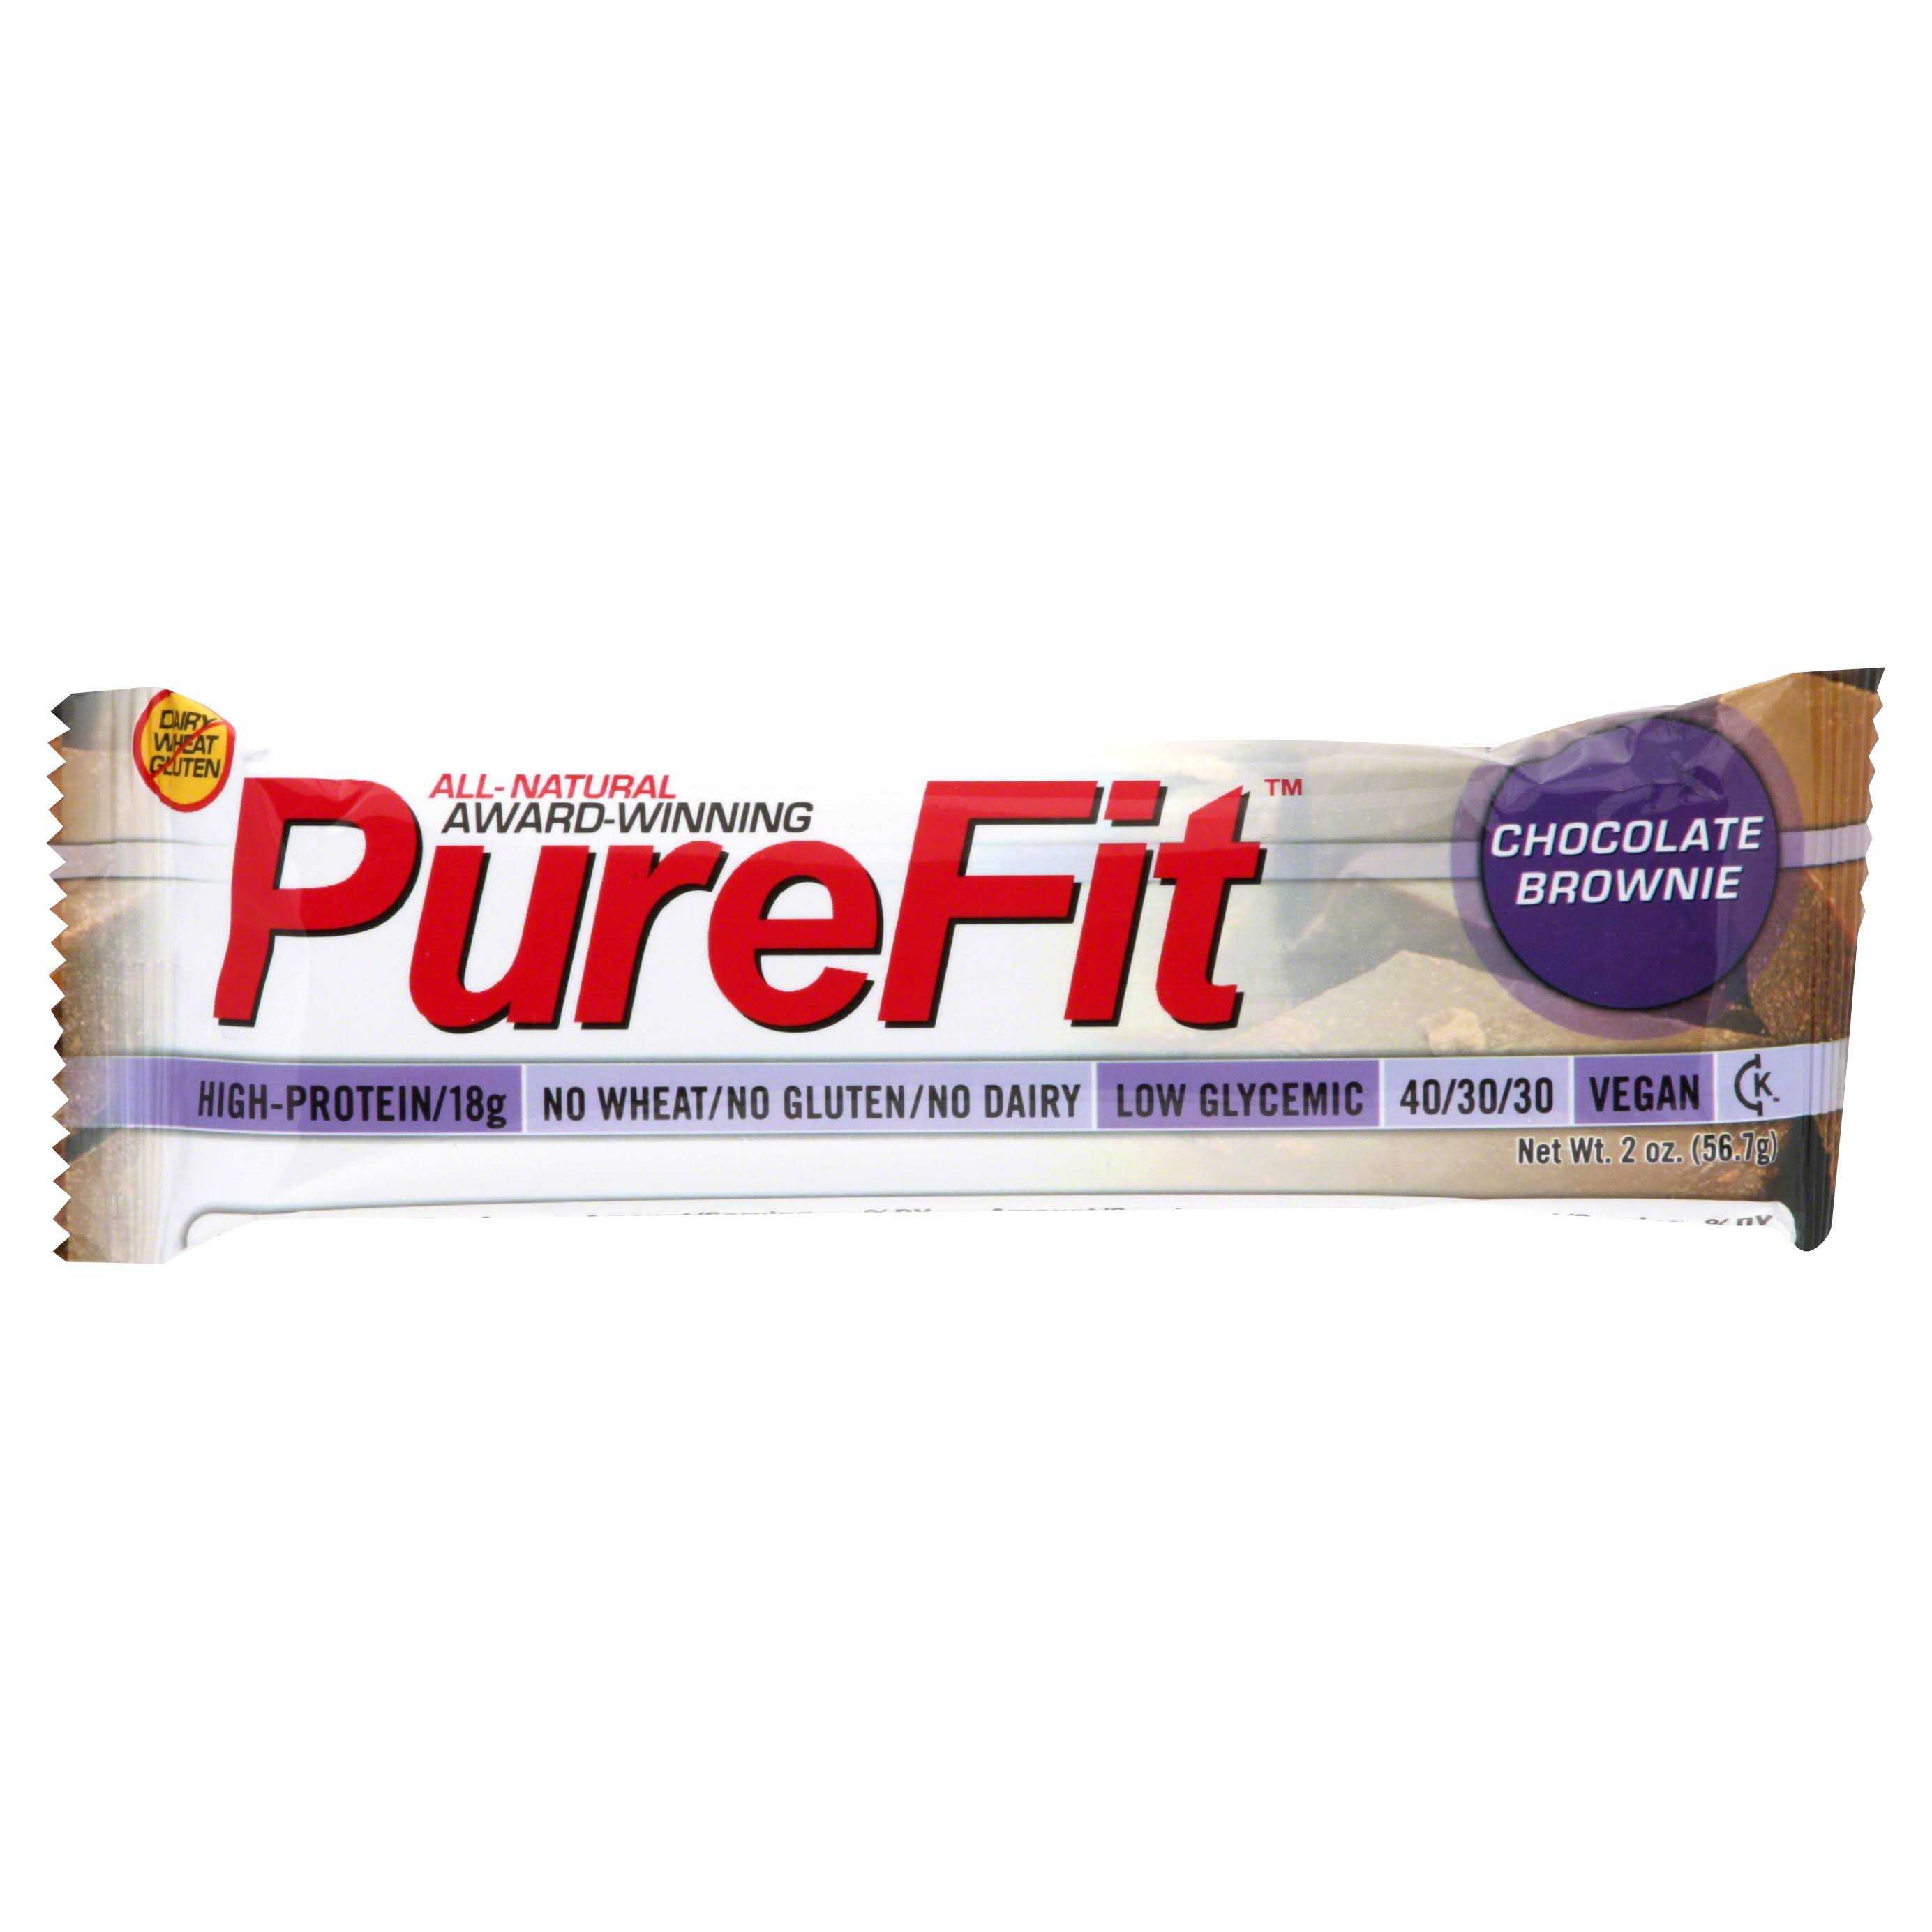 PureFit Nutrition Bar - Chocolate Brownie, 2oz